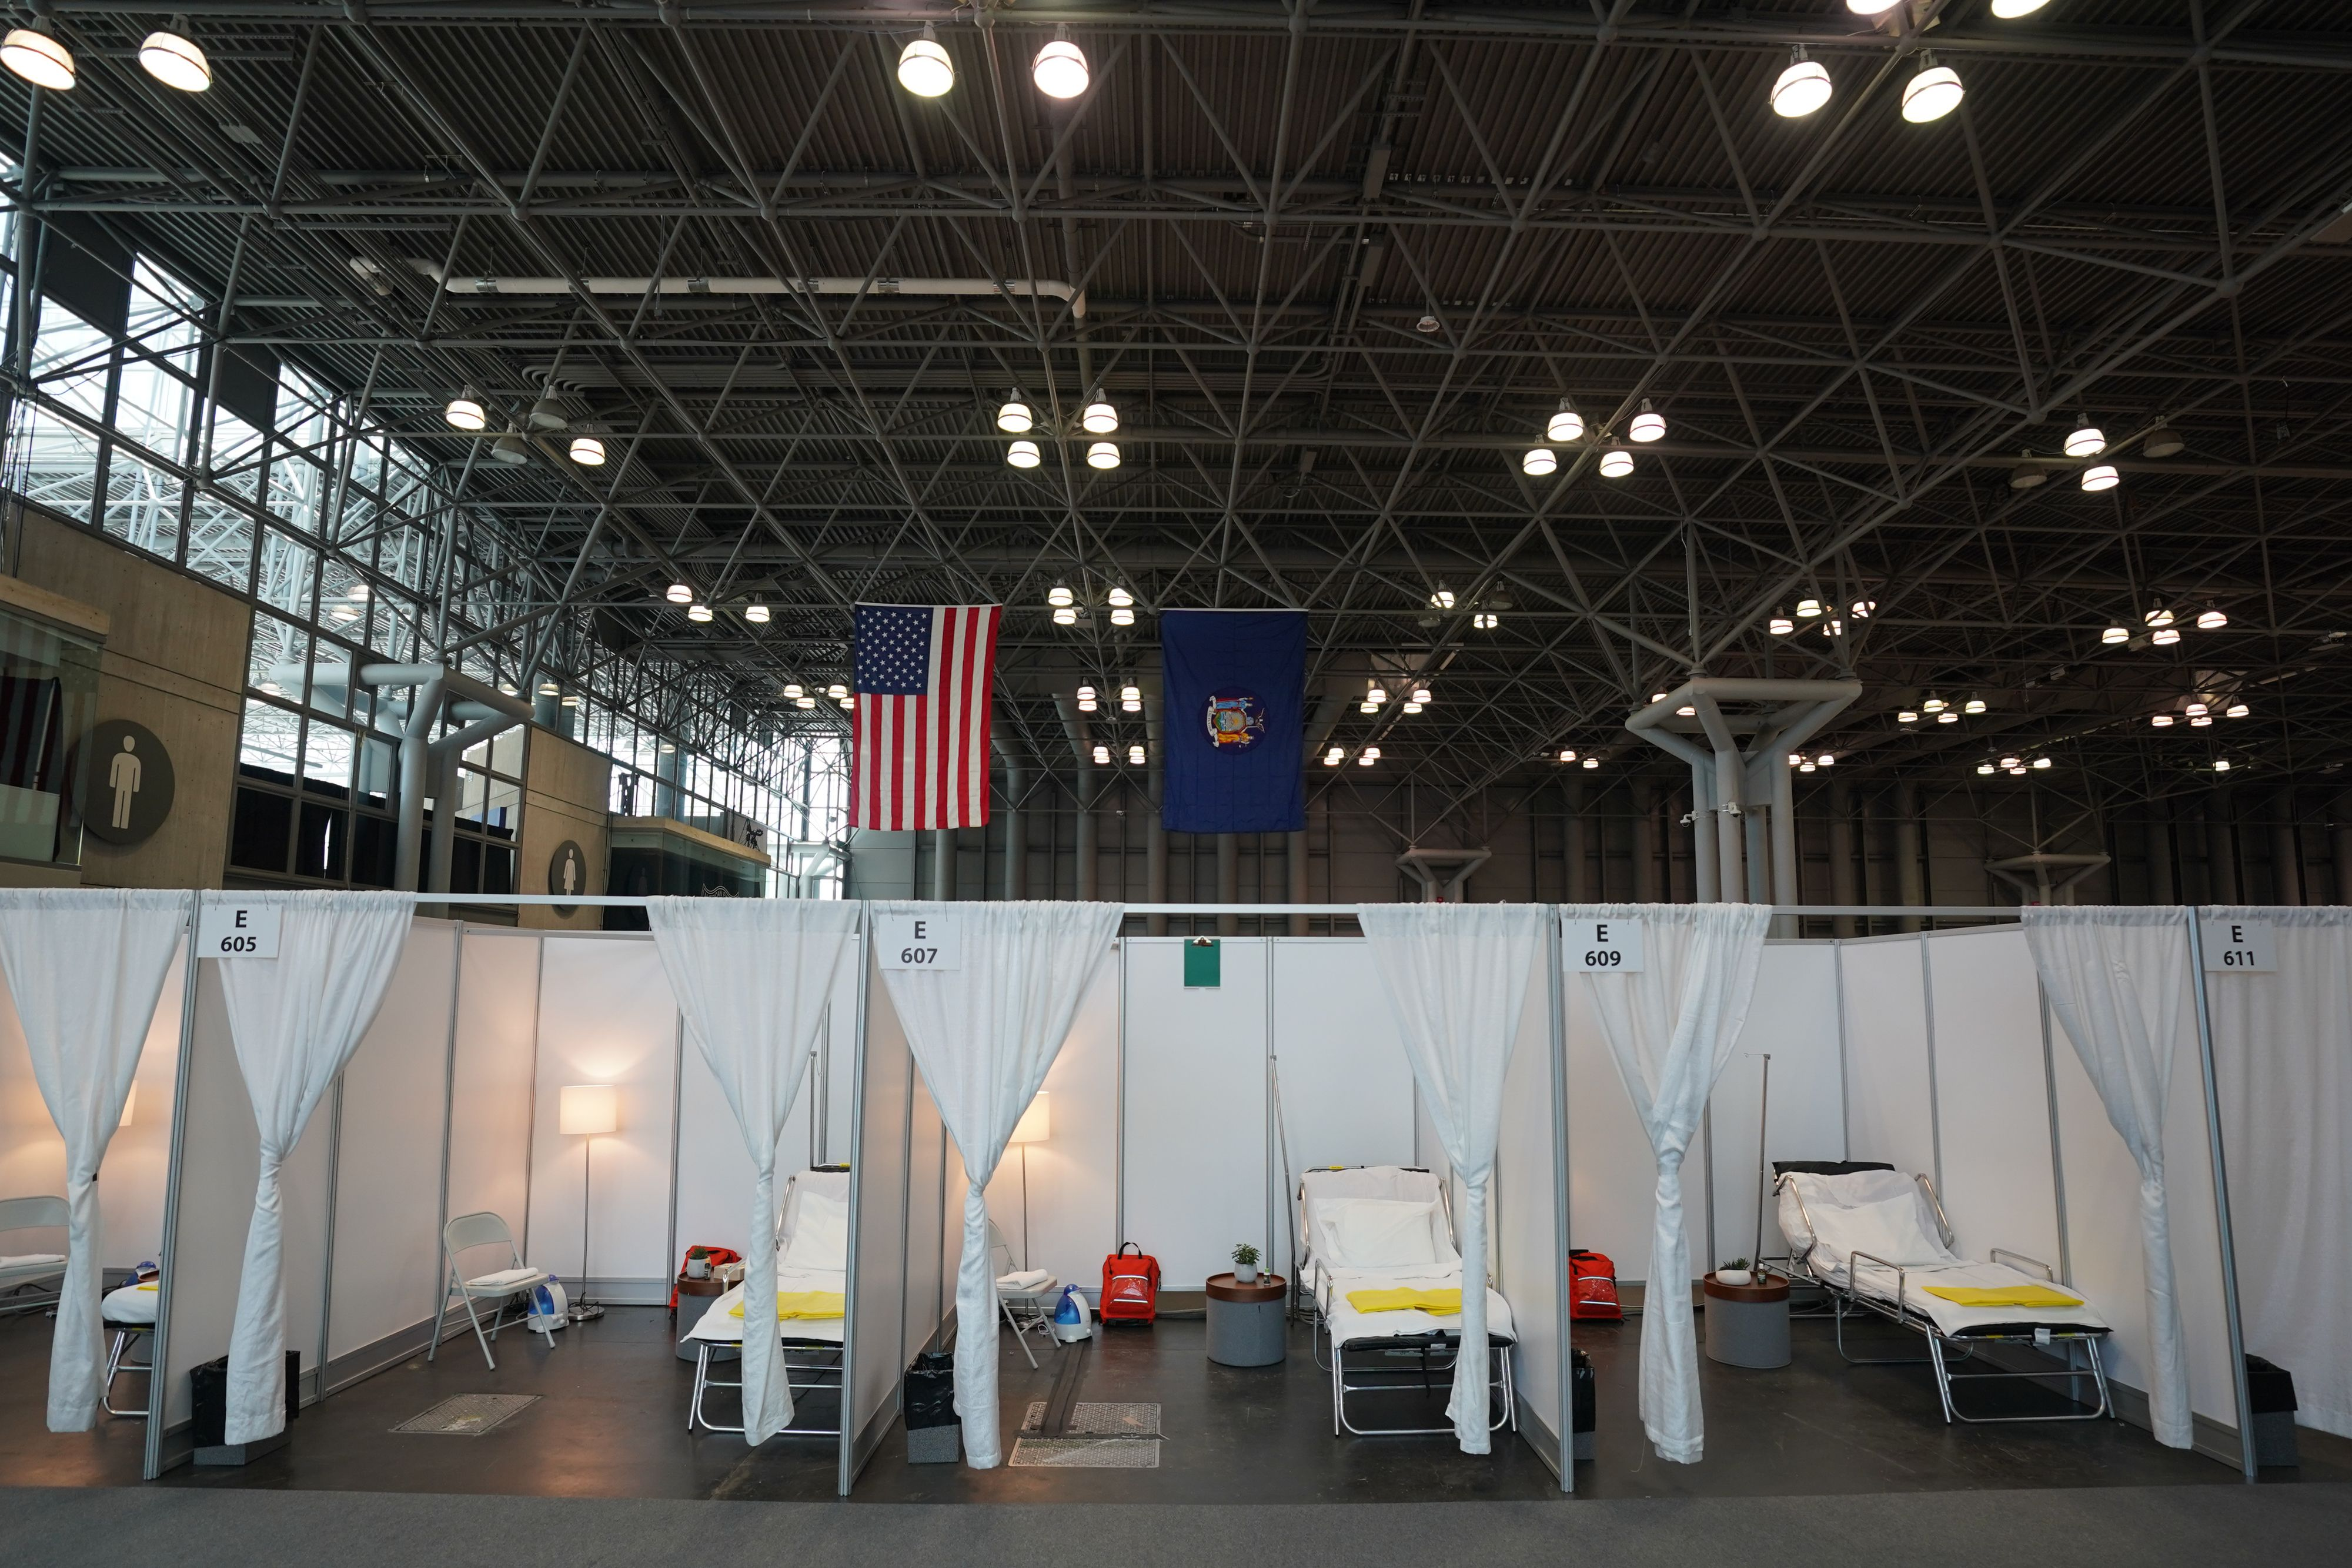 A temporary hospital is set up at the Jacob K. Javits Center on March 27, 2020 in New York. (Photo by BRYAN R. SMITH/AFP via Getty Images)